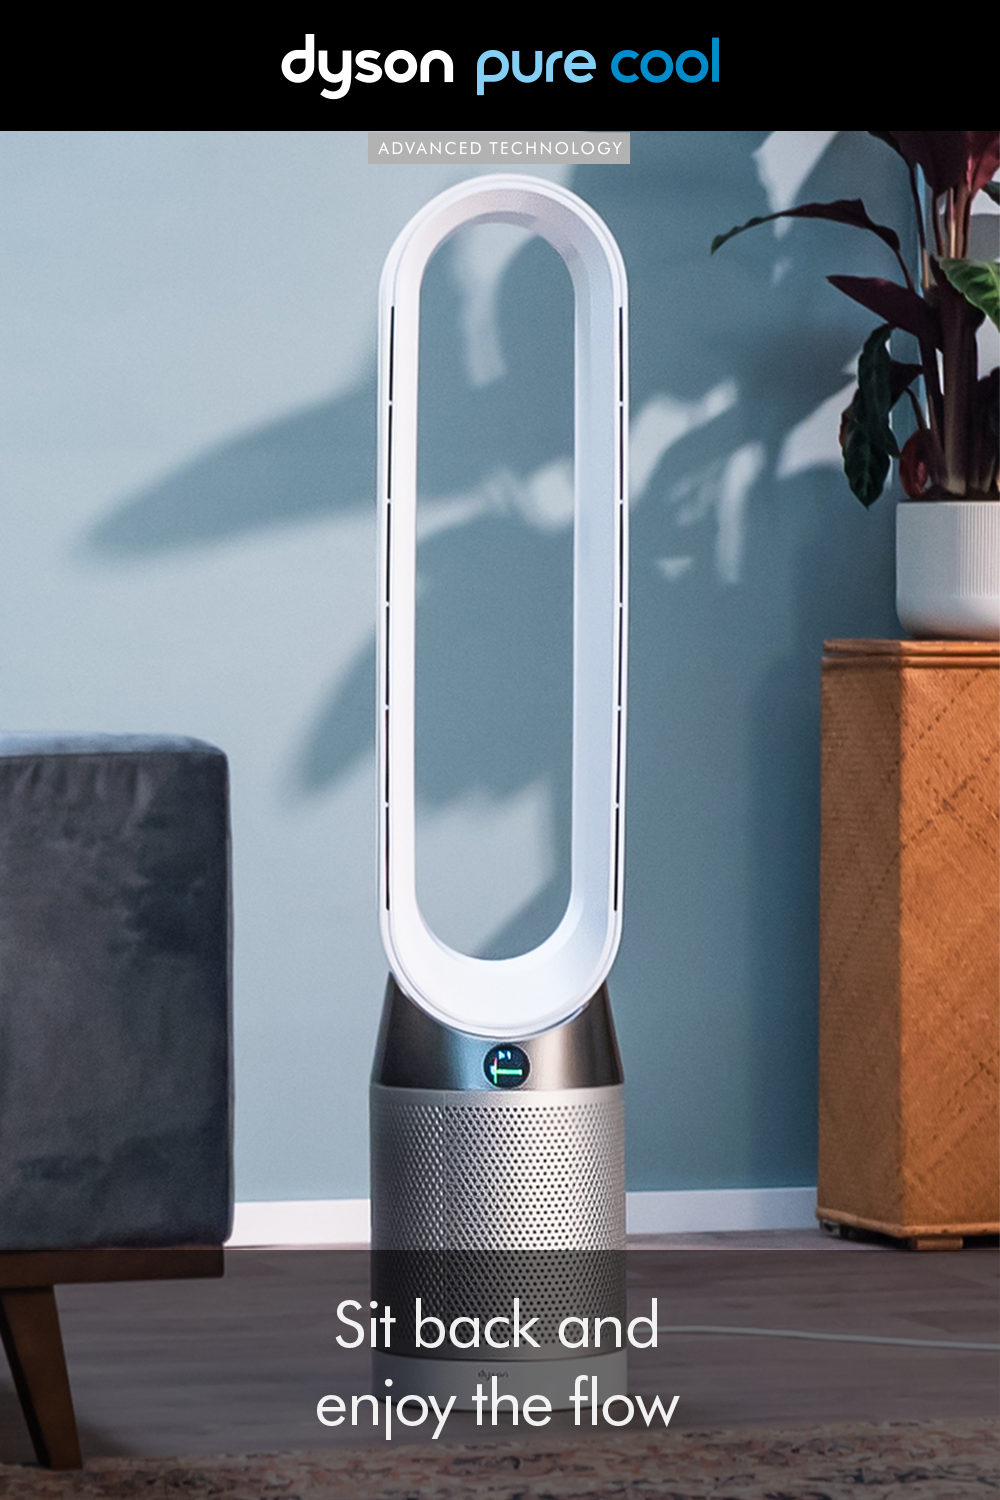 Breeze into the weekend. The Dyson Pure Cool™ provides a